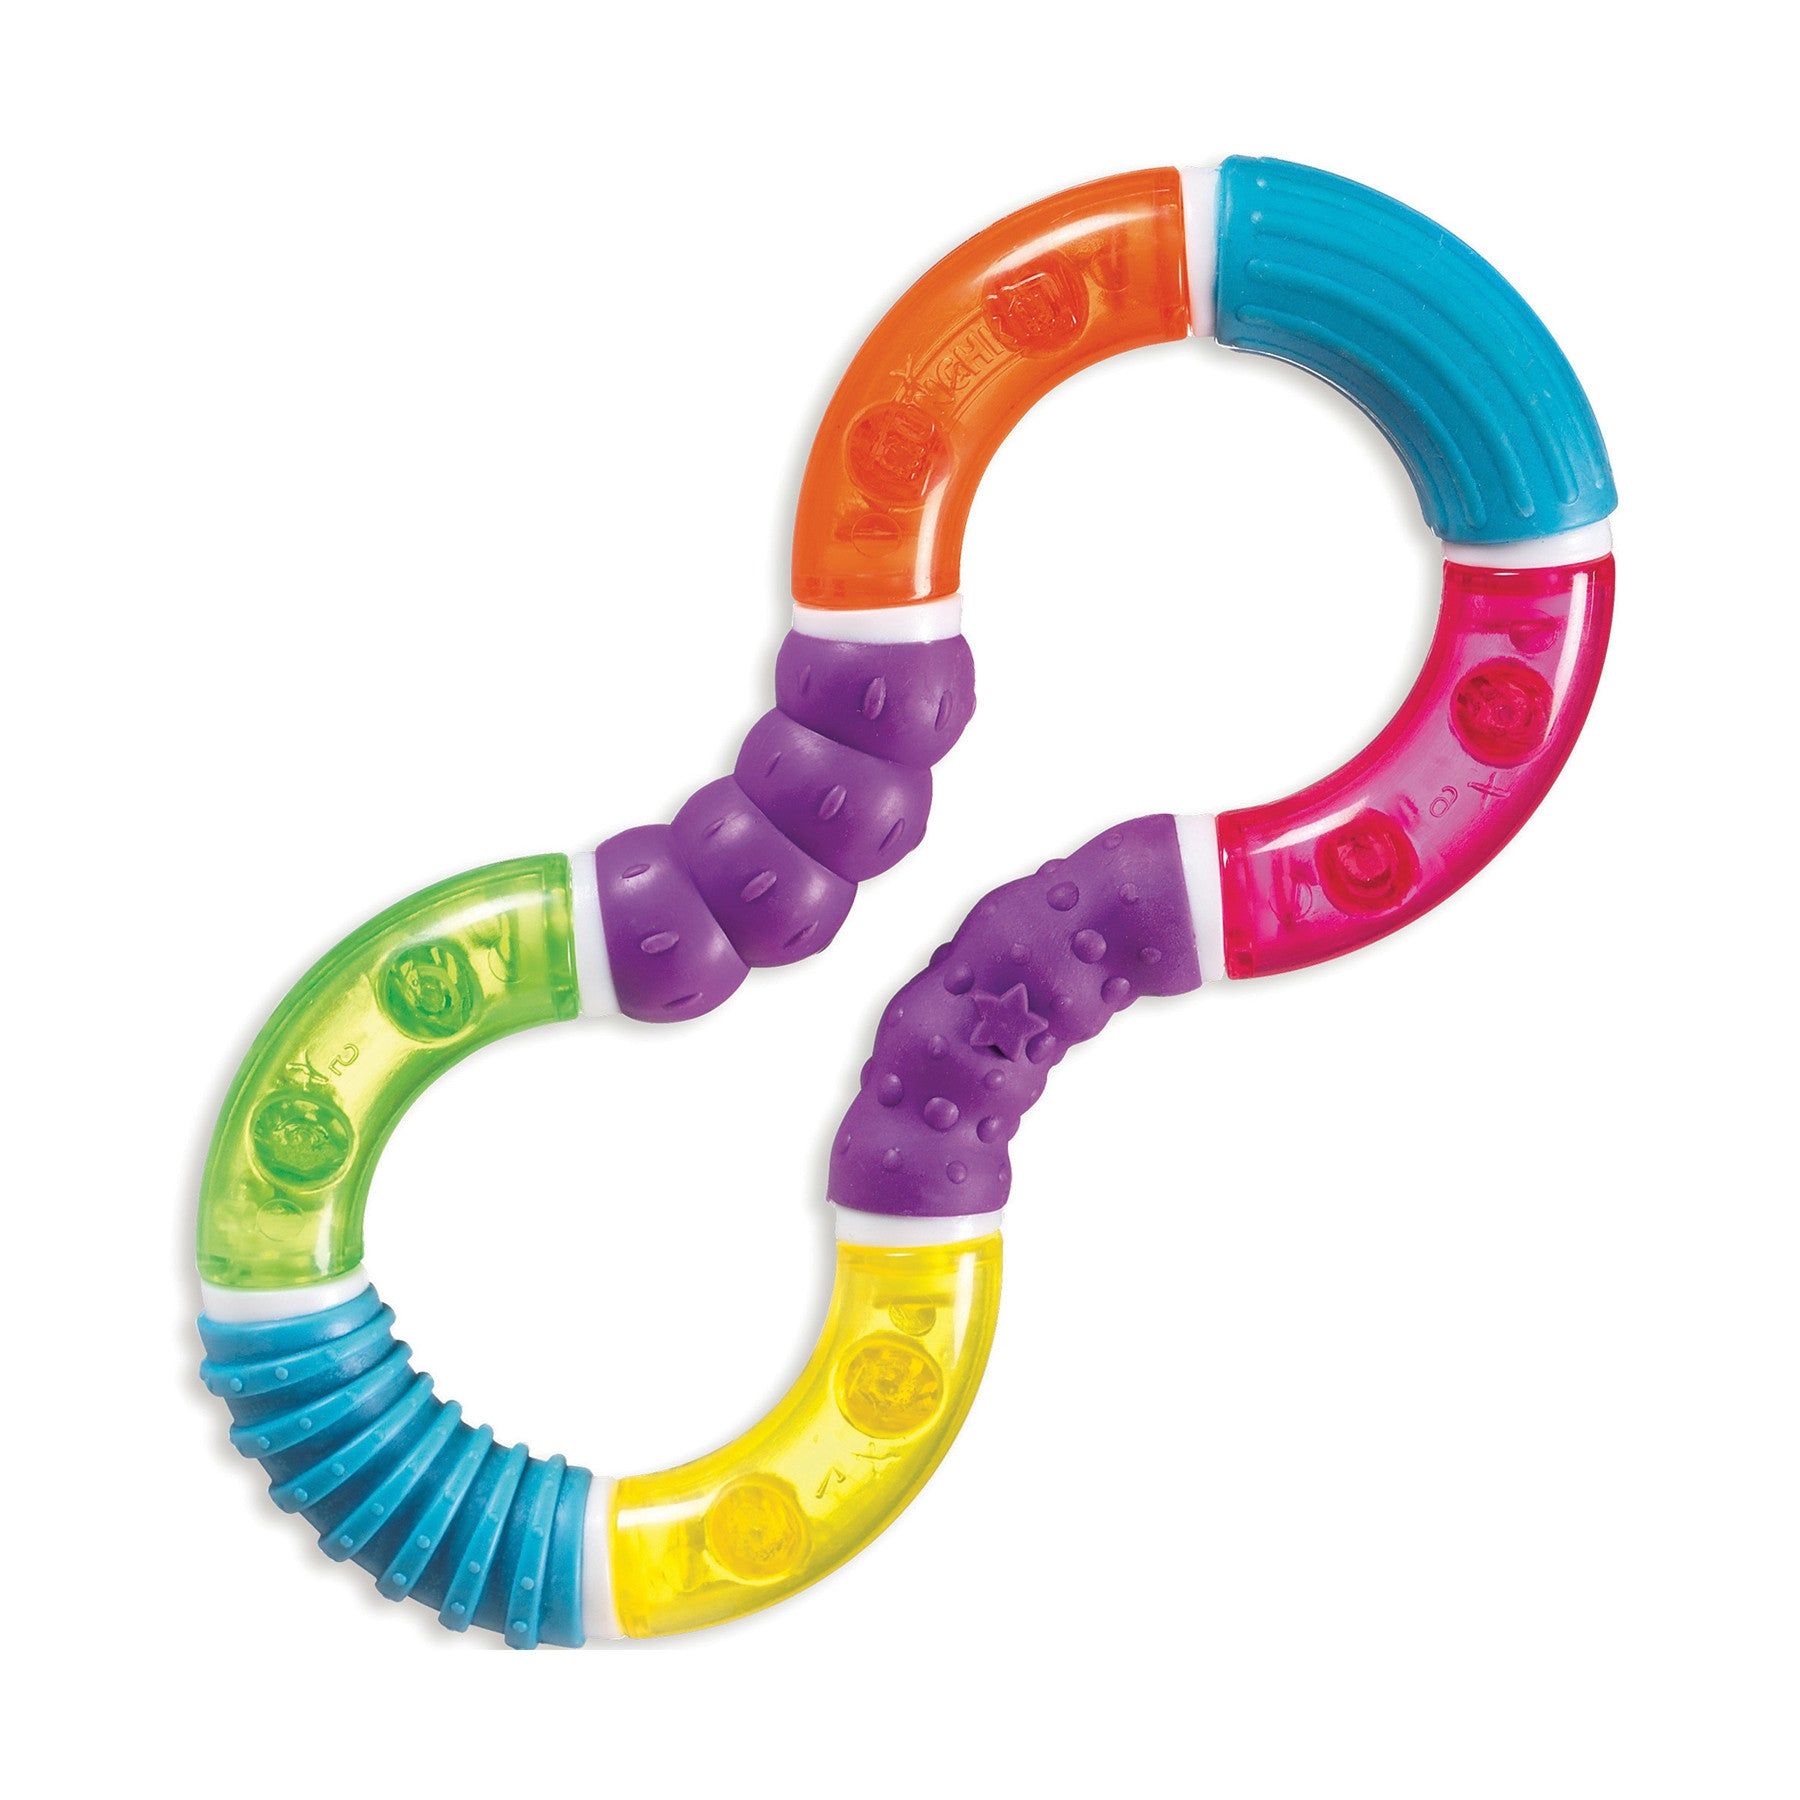 Twisty Figure of 8 Teether Toy by Munchkin – Little Citizens Boutique